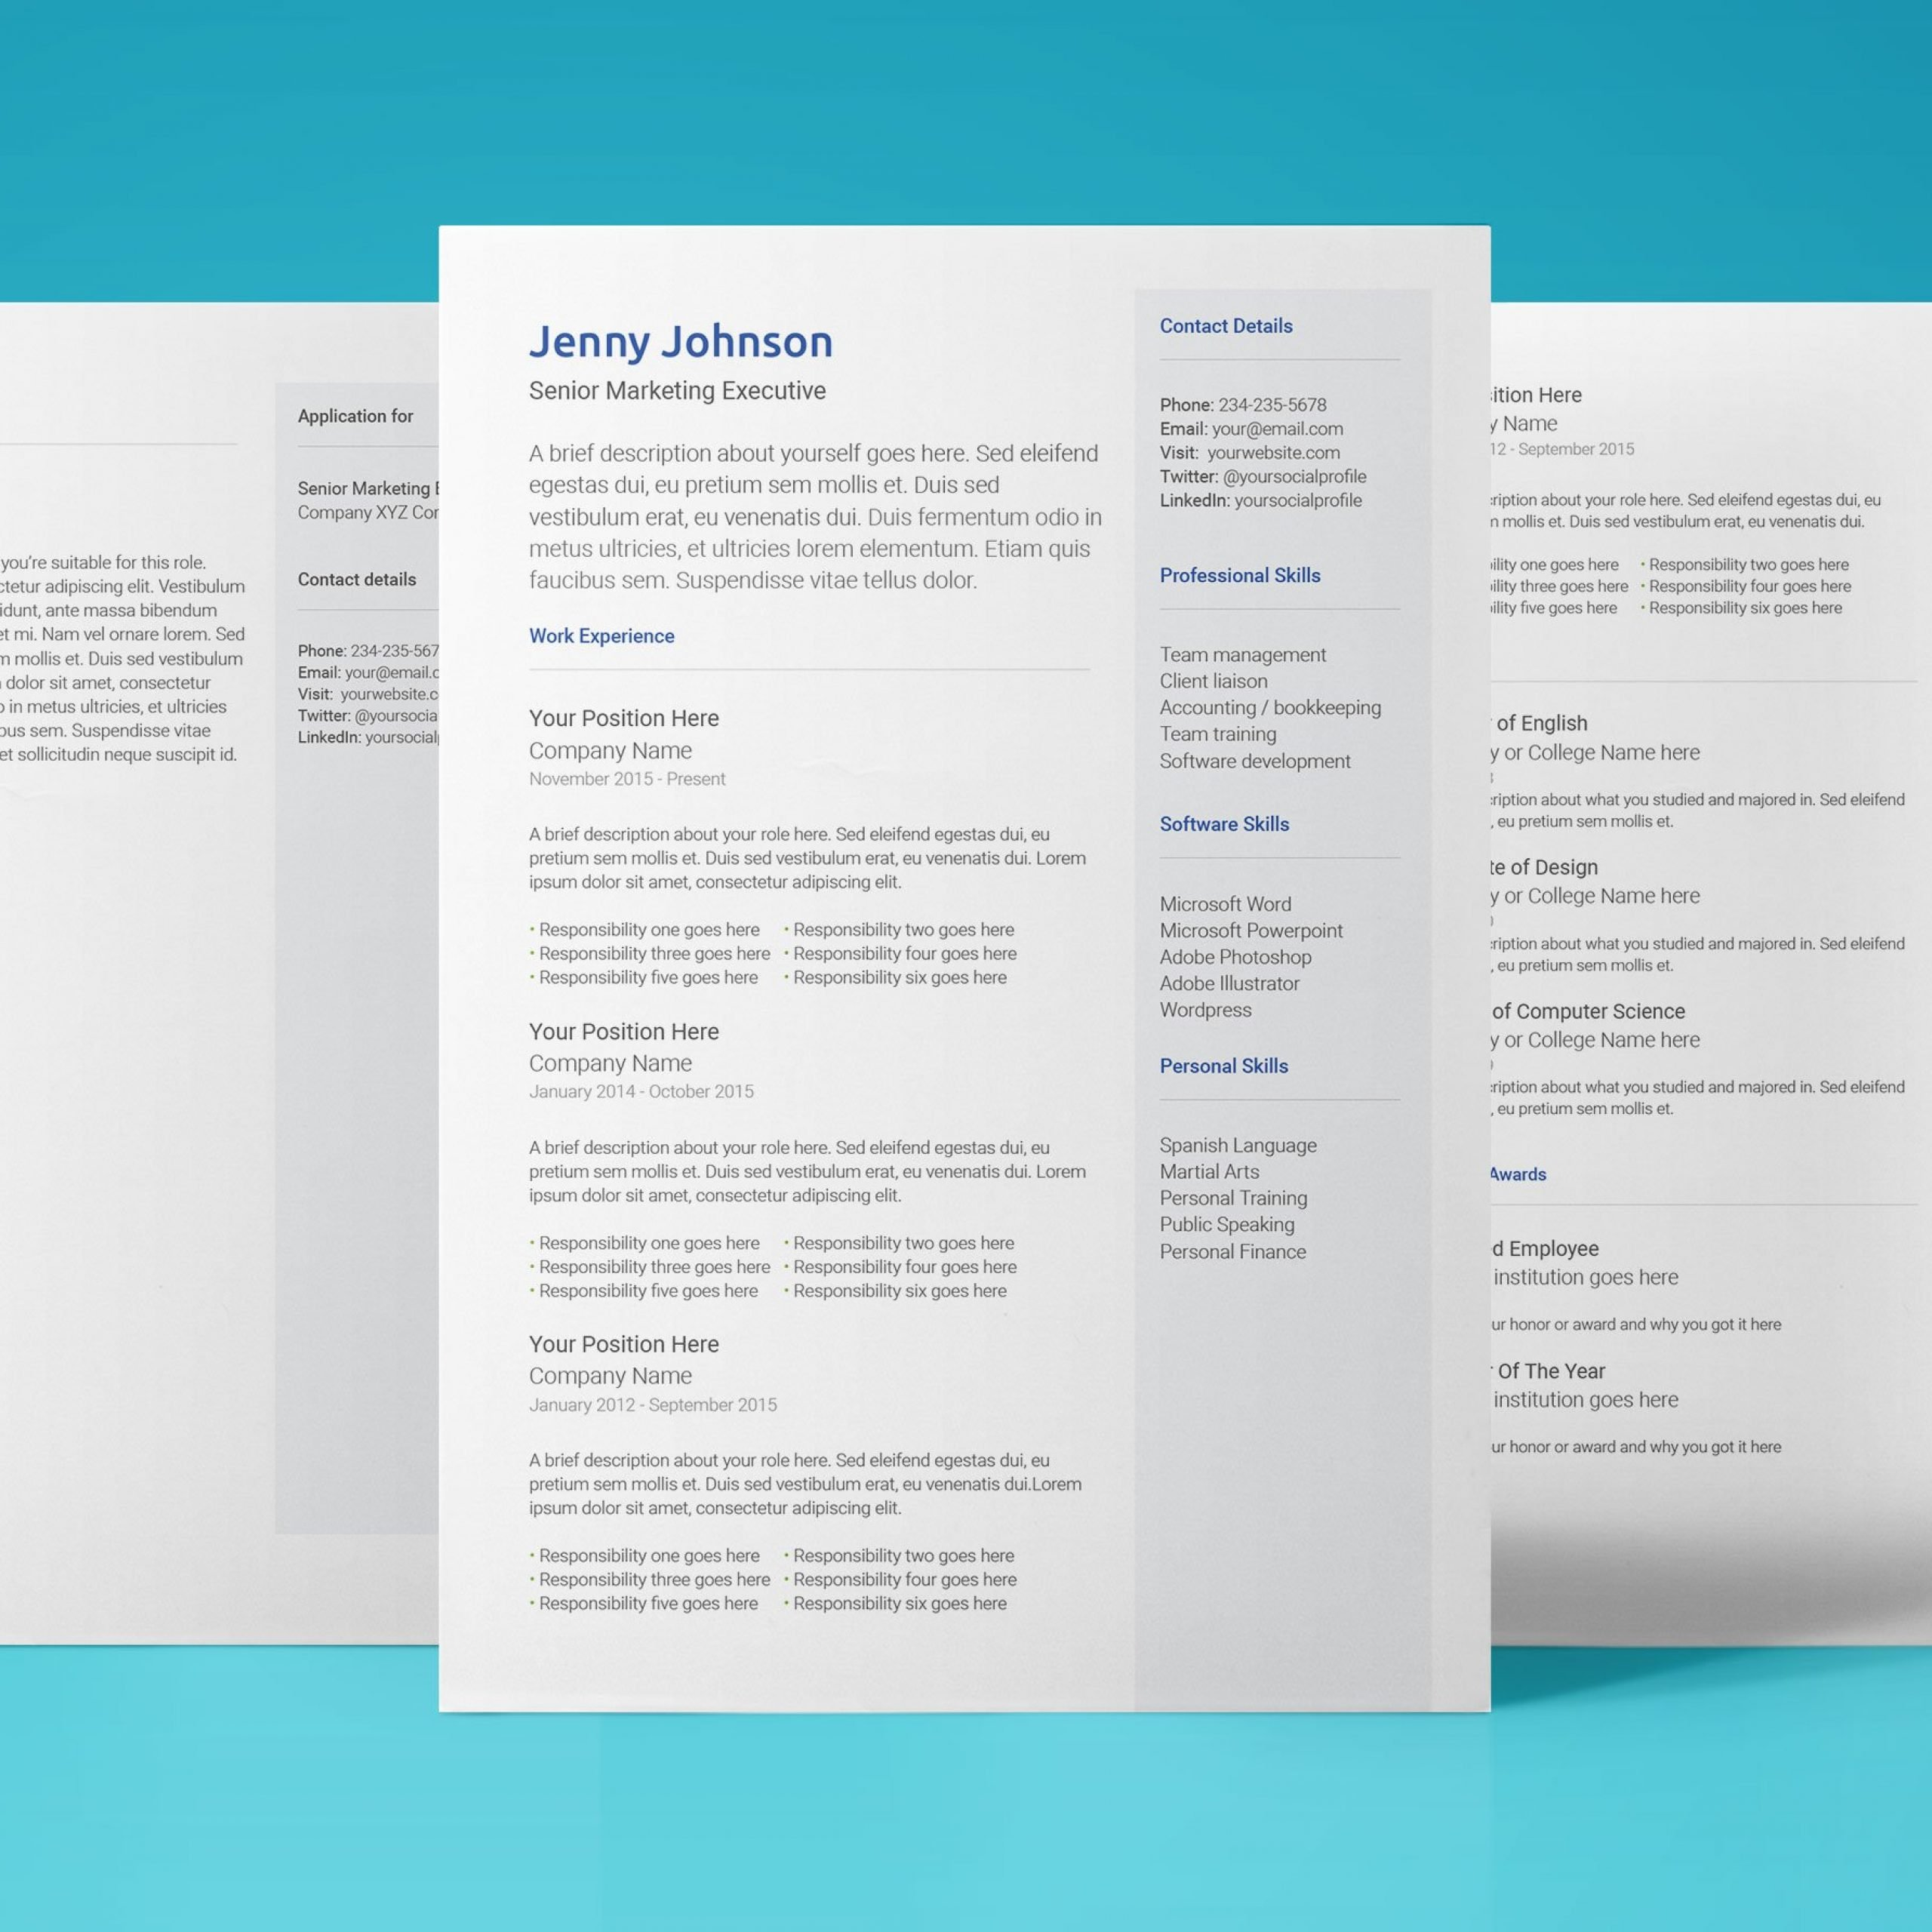 free google docs resume template use upresume templates neptune cv scaled tier help desk Resume Resume Google Doc Templates